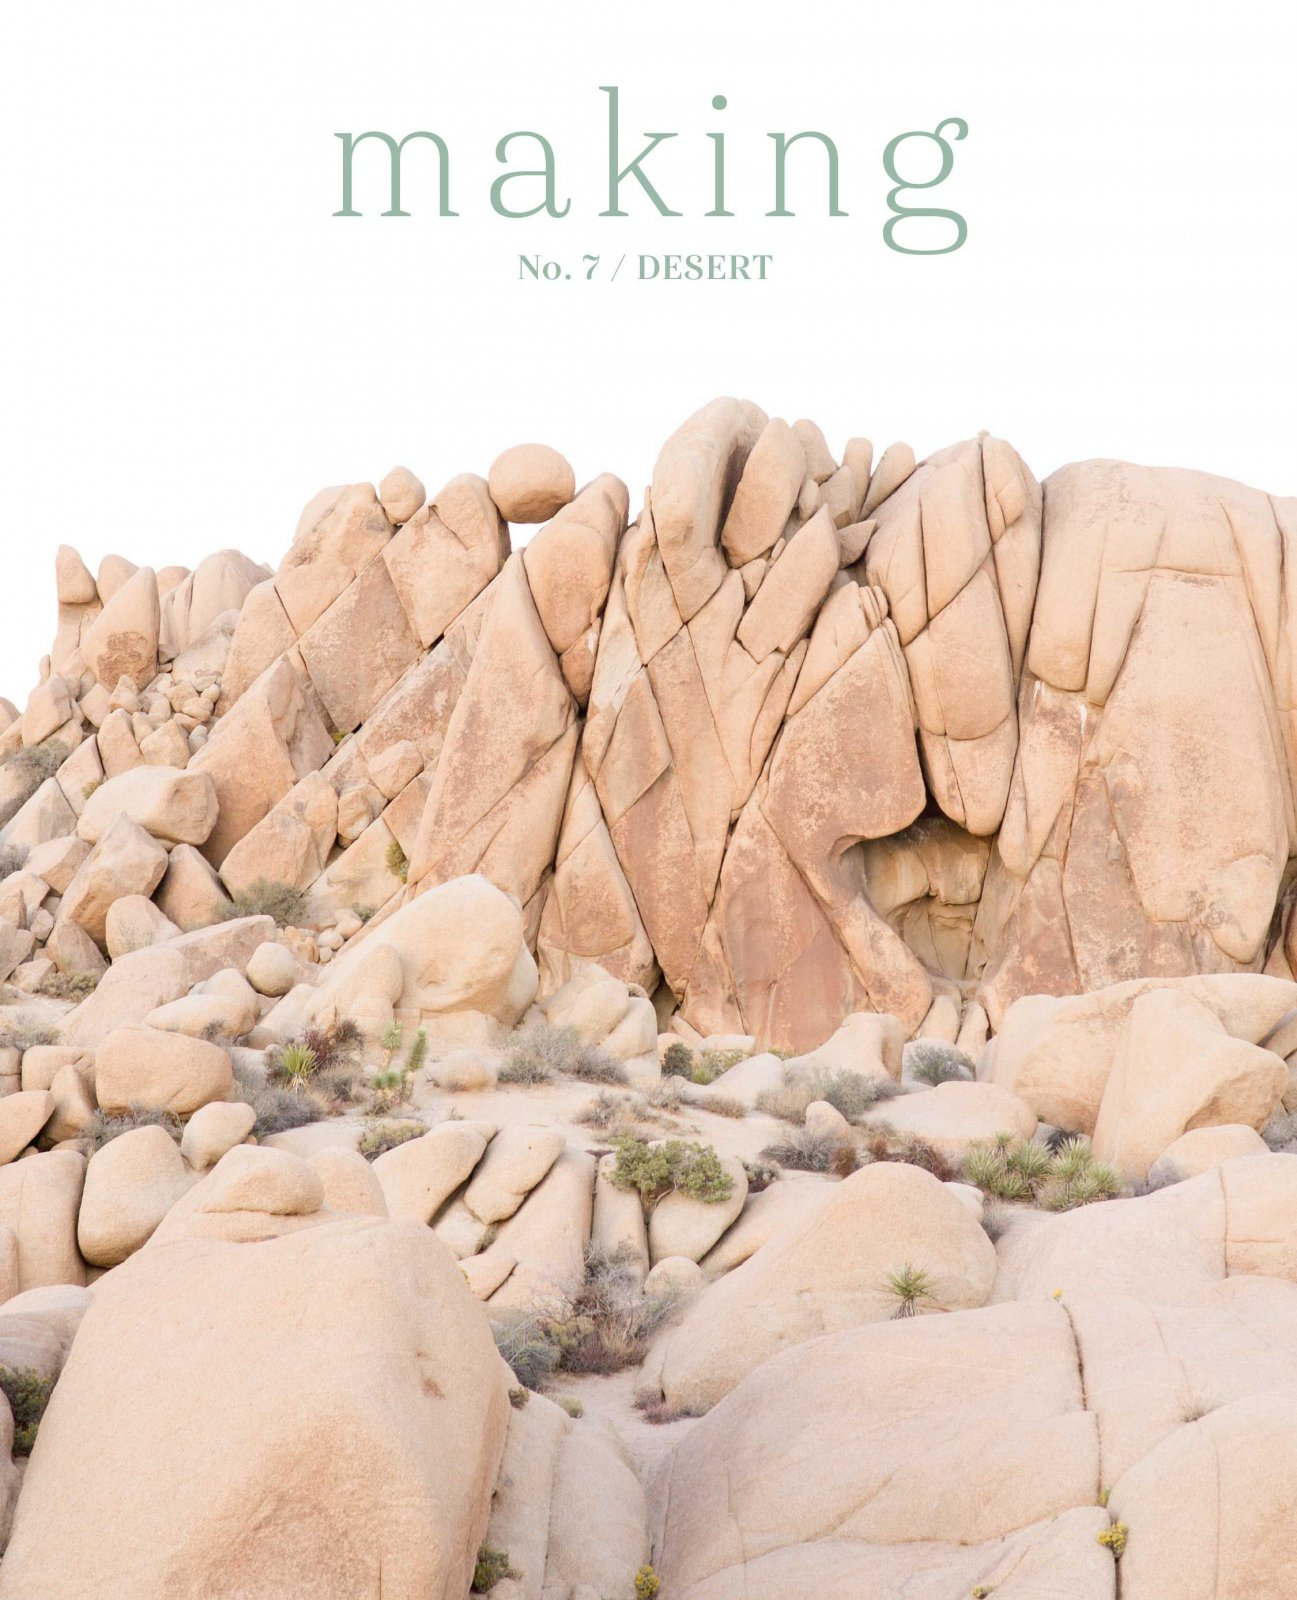 Making: No. 7 / Desert